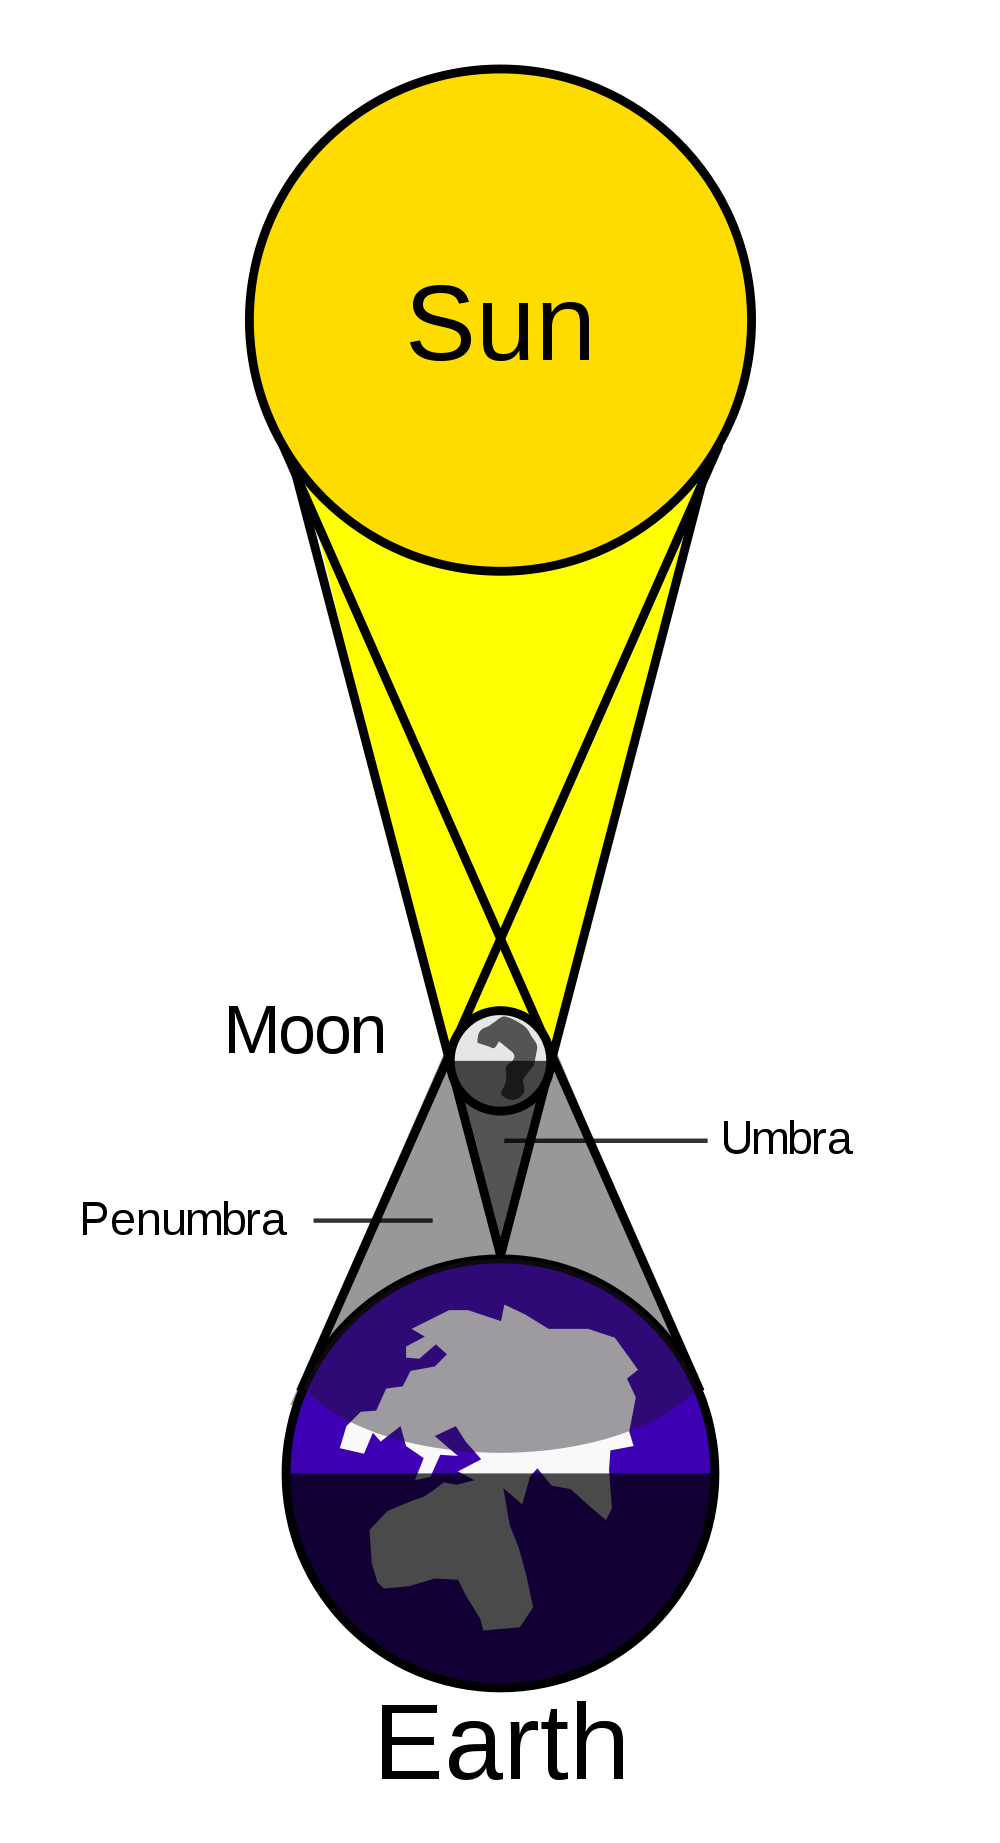 Solar Eclipse clipart #6, Download drawings